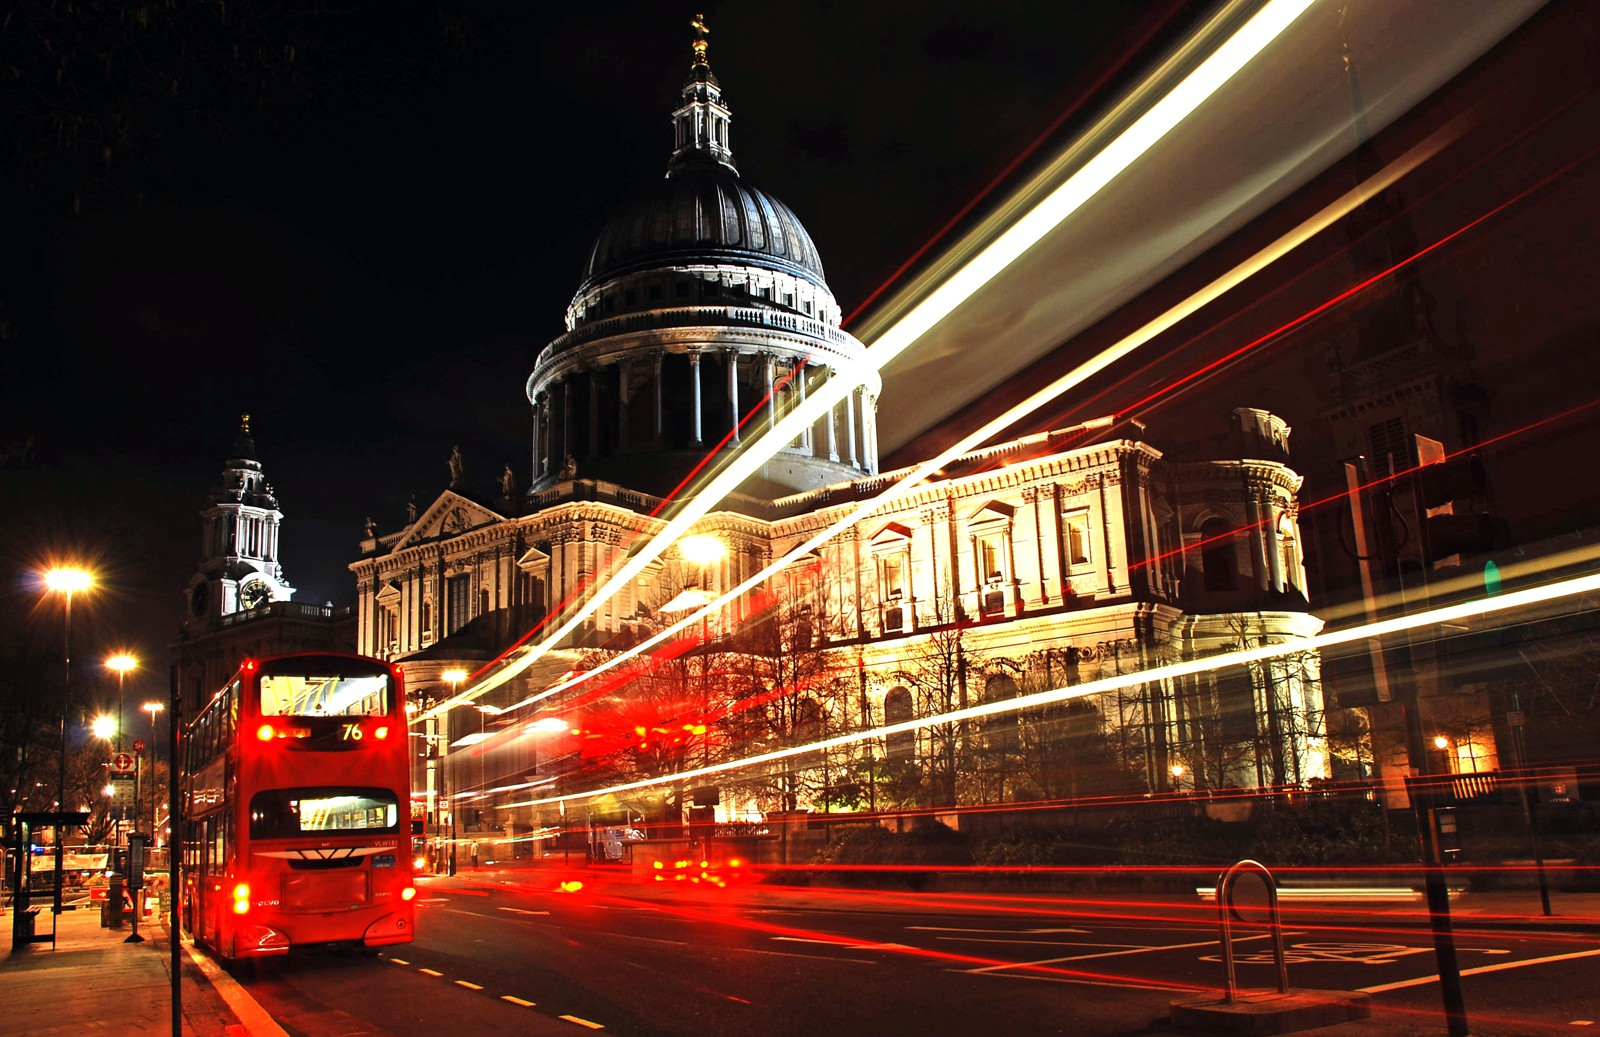 10 Unique And Unusual Places You'll Want to Explore In London